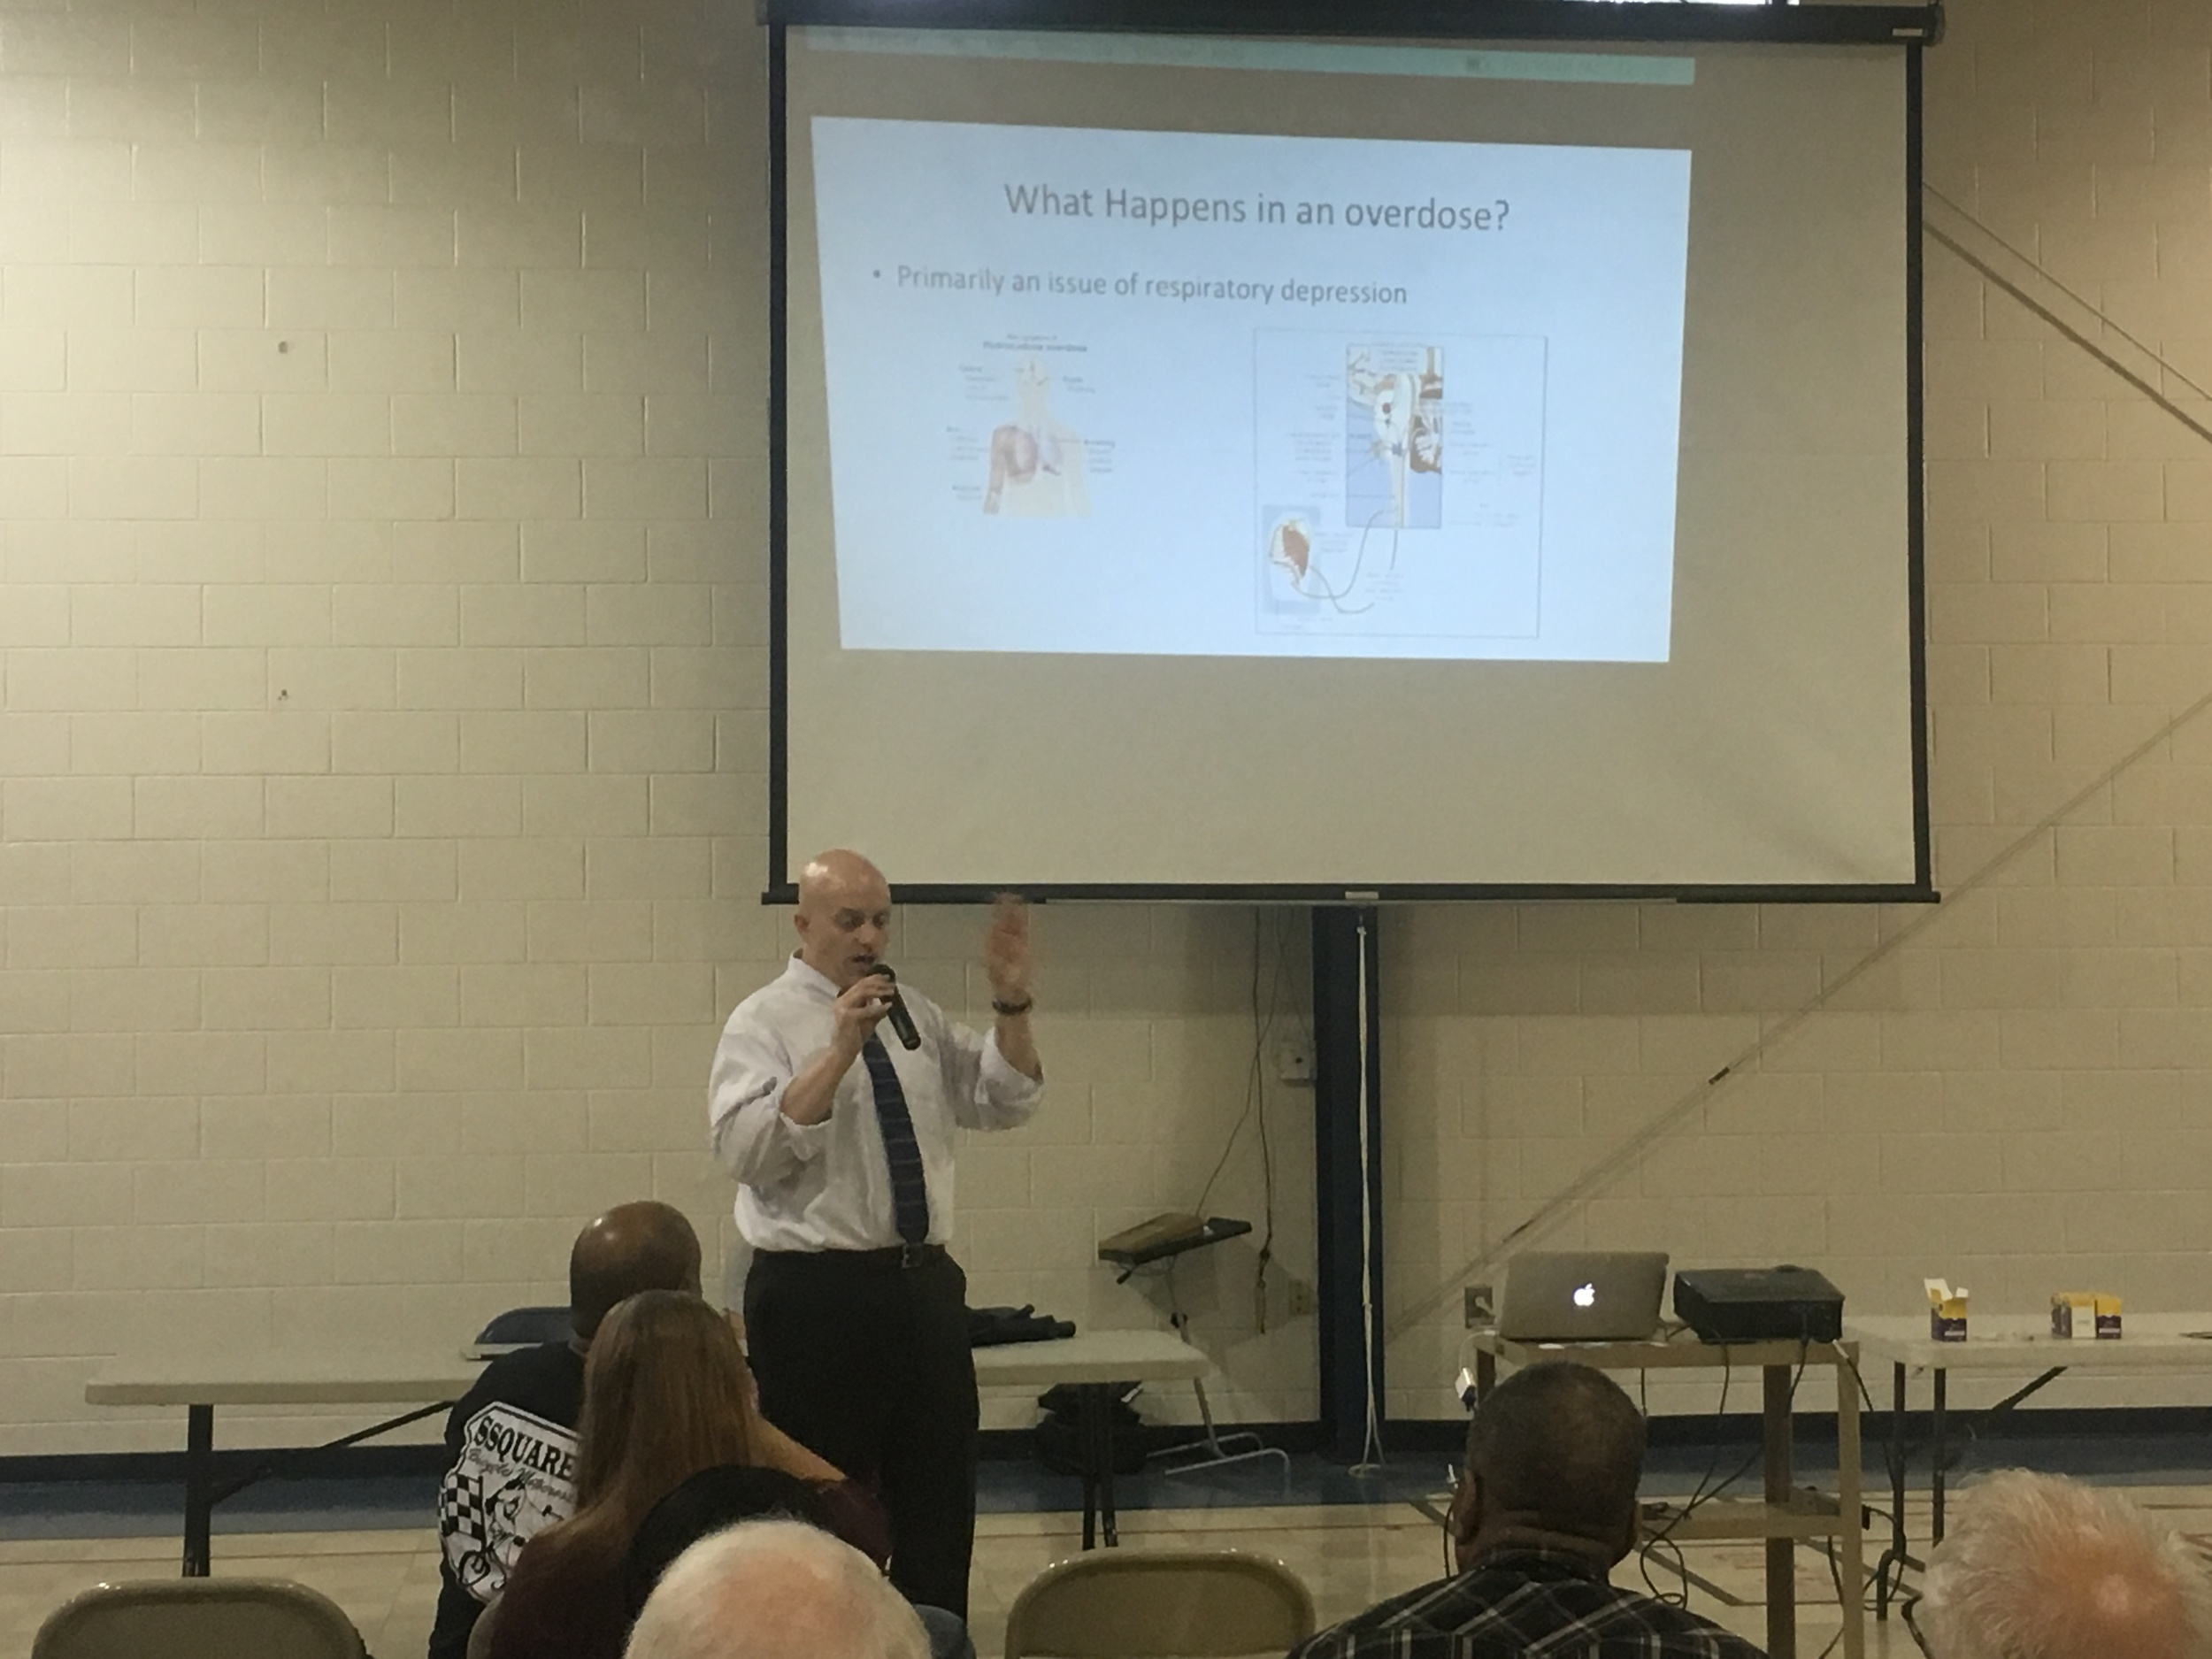 Dr. Jimmy explaining the process that happens during an opioid overdose